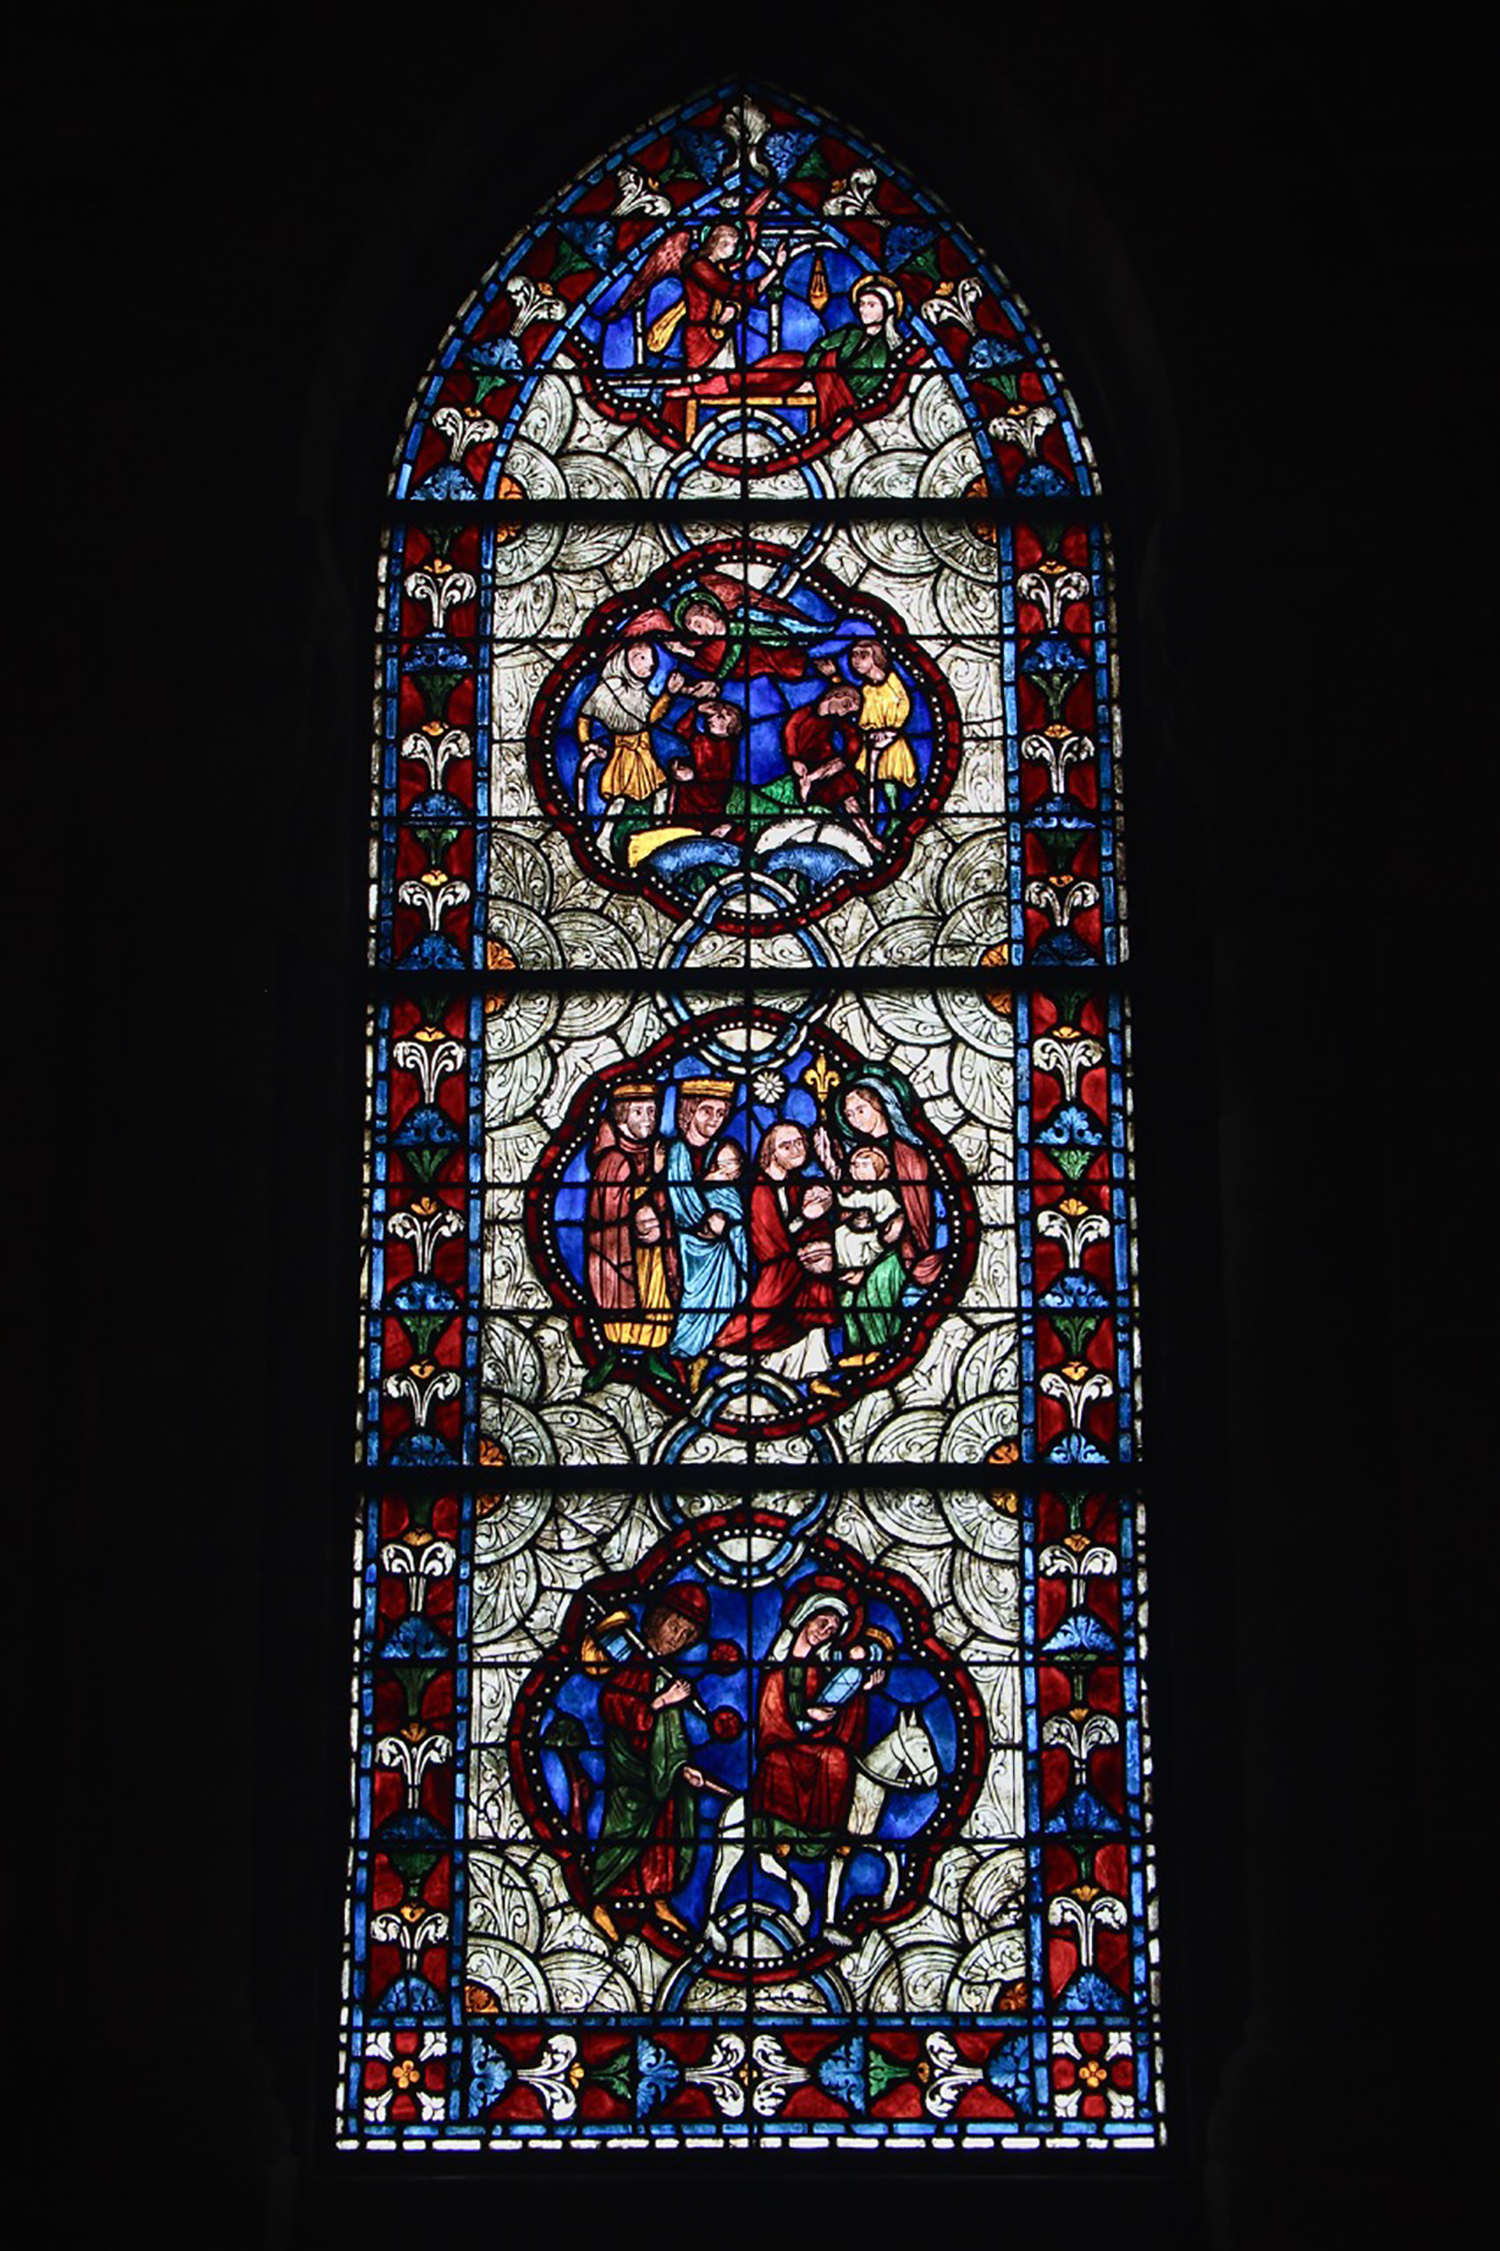 Figure 15: The two side walls of Glencairn's chapel hold stained glass windows inside Gothic arches, both made in the Bryn Athyn glassworks. The south window shows scenes from the birth of Jesus Christ. The three complete medallions are reproductions of part of a thirteenth-century window in the nave of the church of Sainte-Radegonde in Poitiers, France. The scene at the top of the window is presumed to be an original design drawn up in Bryn Athyn's stained glass studio.